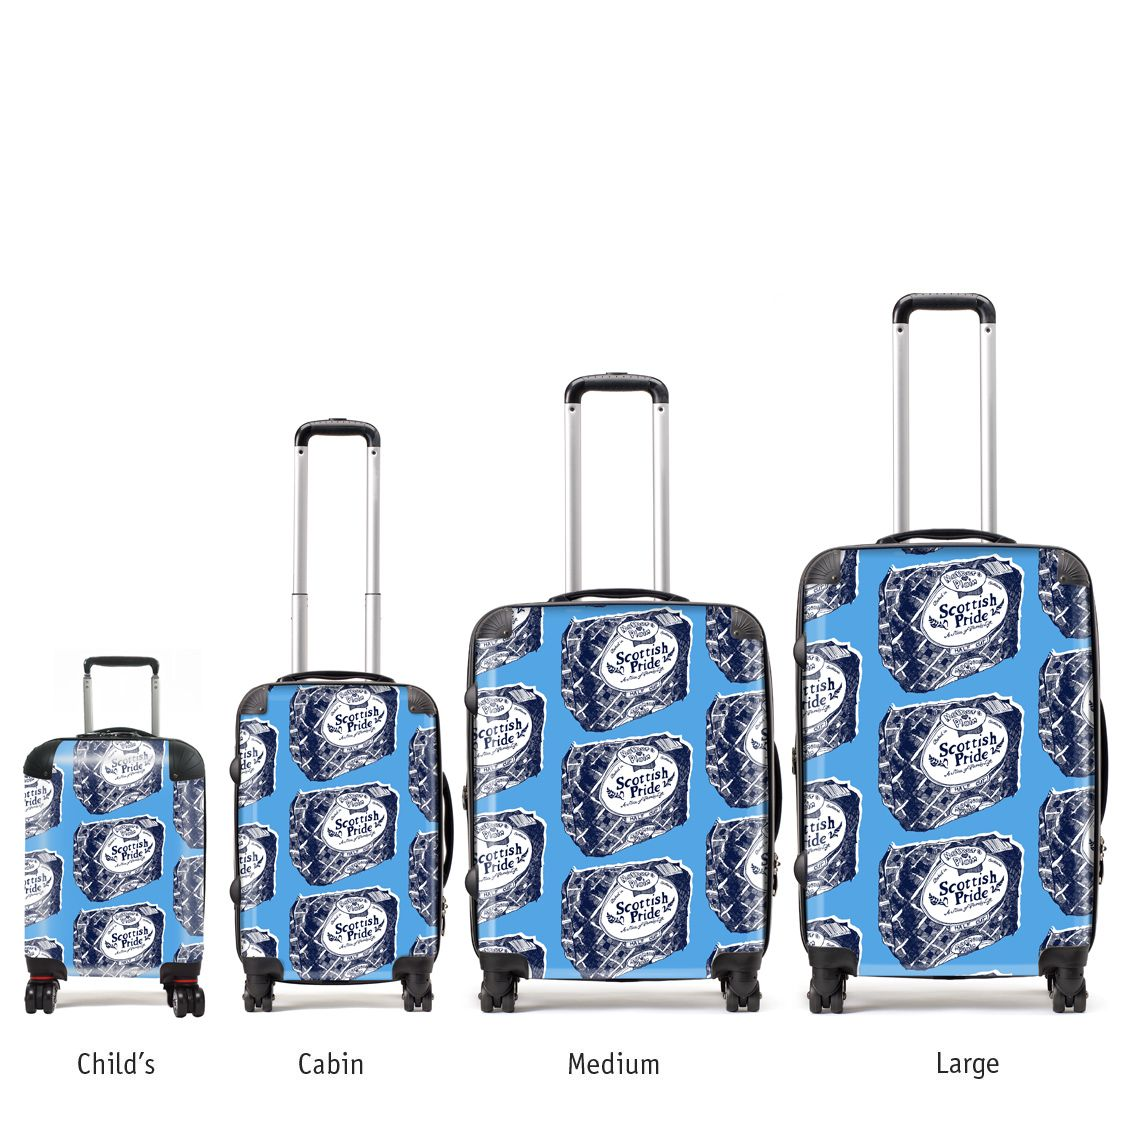 Brand new from Gillian Kyle. These fabulous Scottish suitcases come in various sizes. Wear your Scottishness with pride and stand out from the crowd.